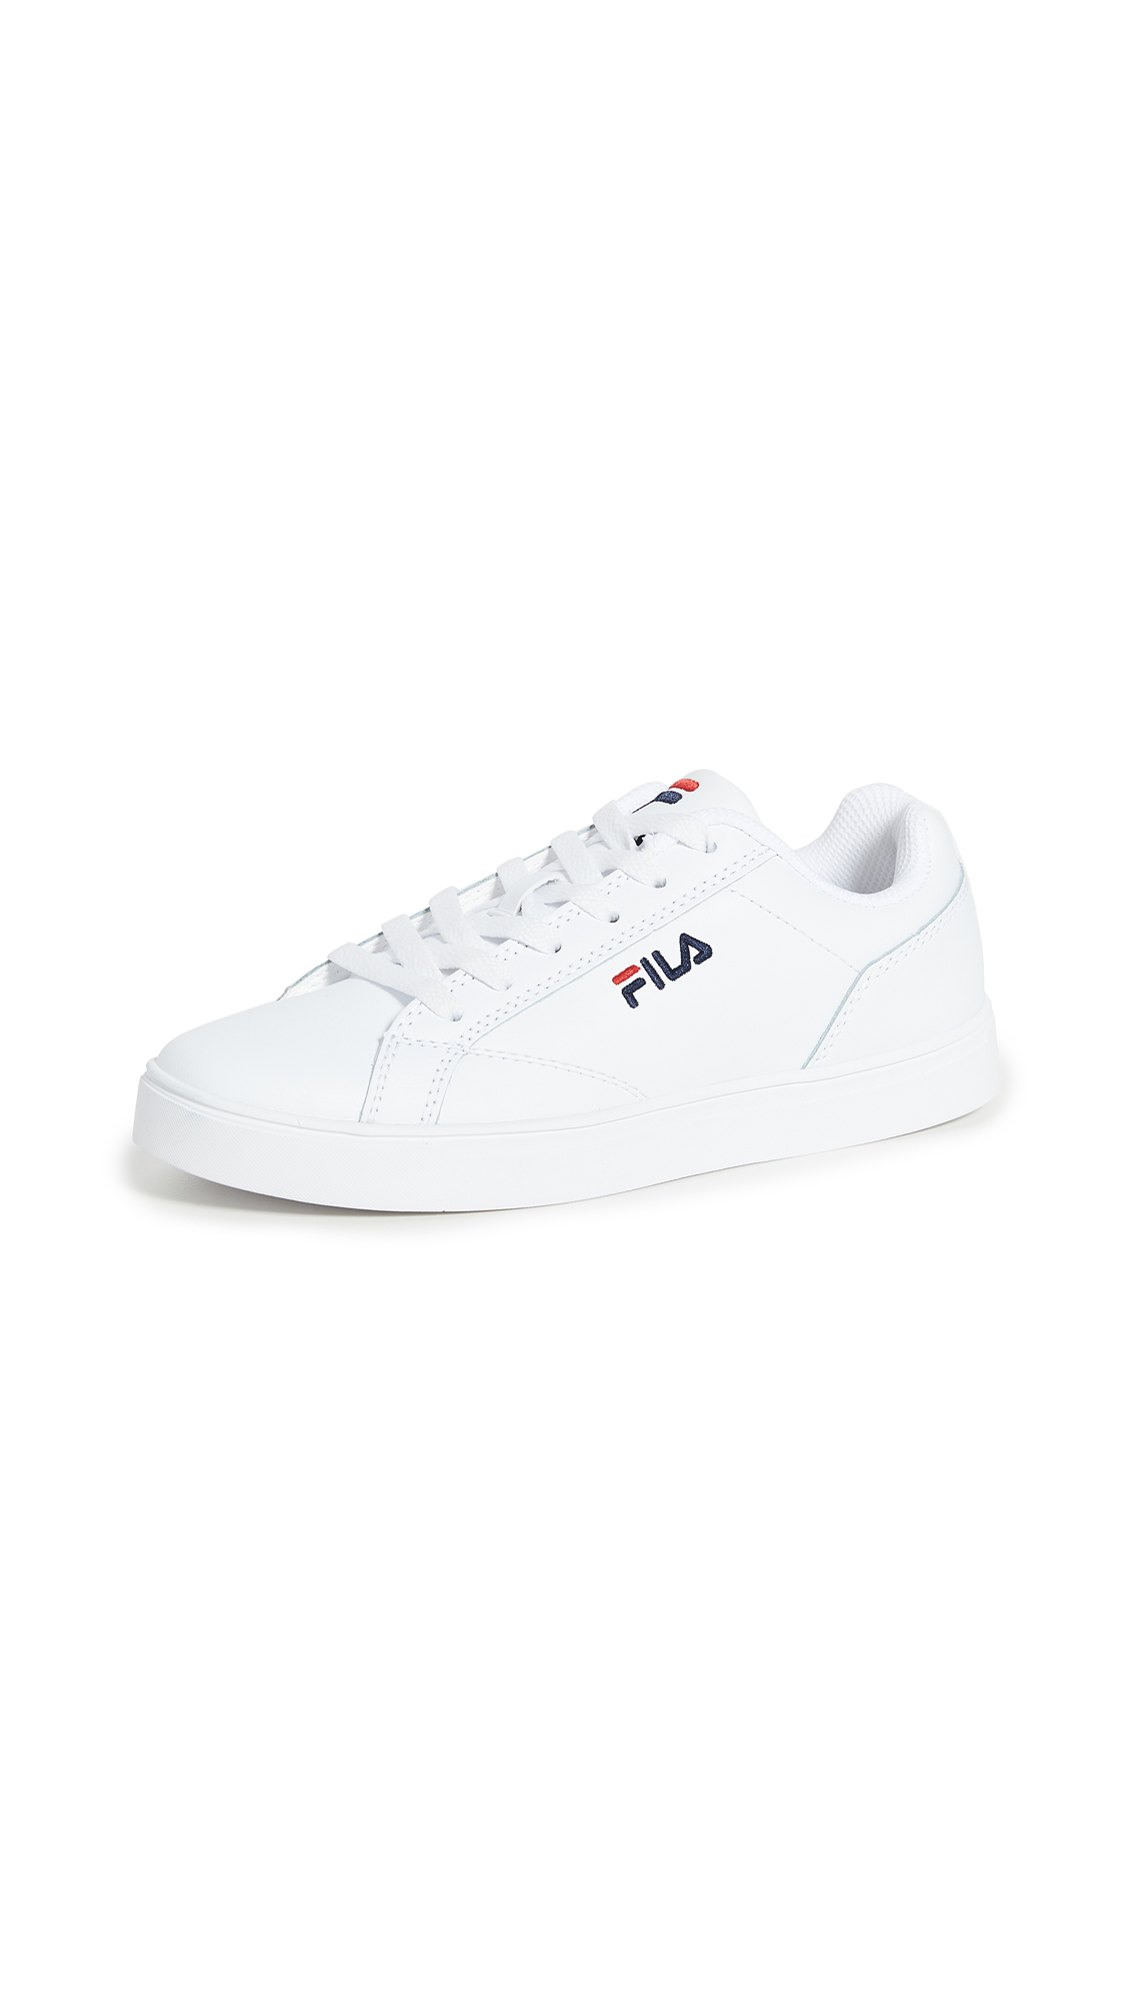 Fila Exclusive Original Court Sneakers